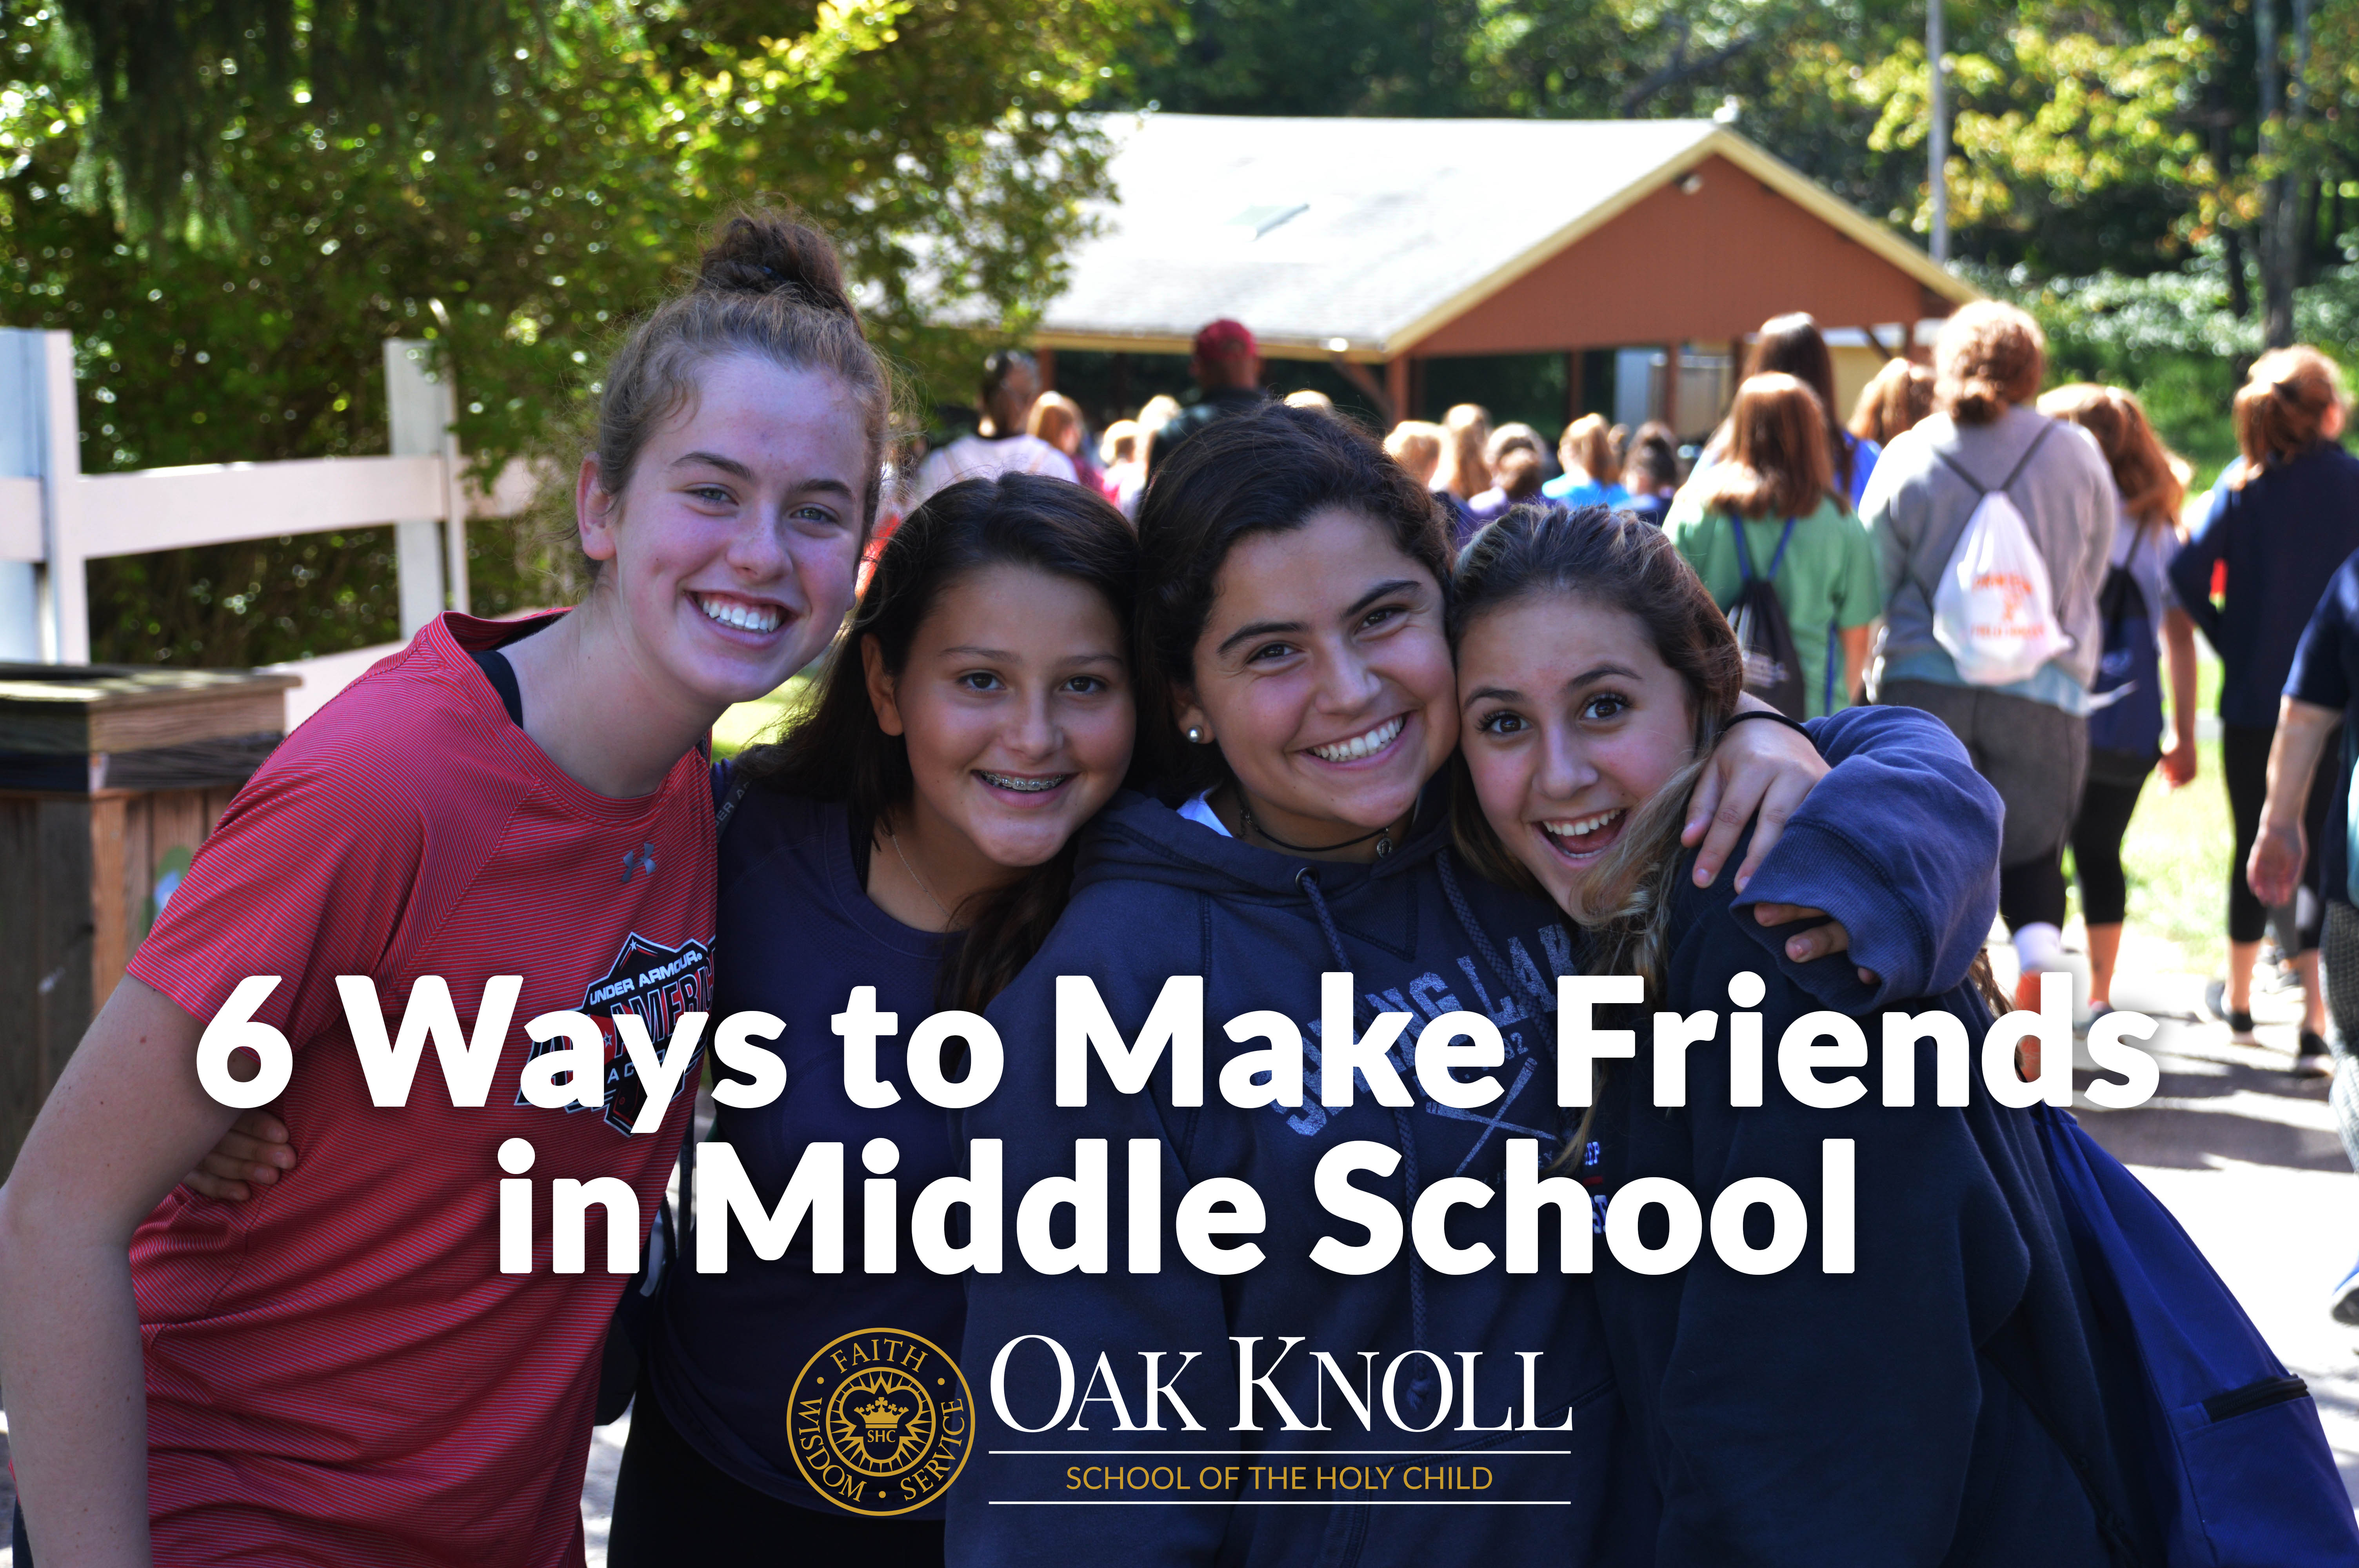 Forum on this topic: How to Make Friends in Middle School, how-to-make-friends-in-middle-school/